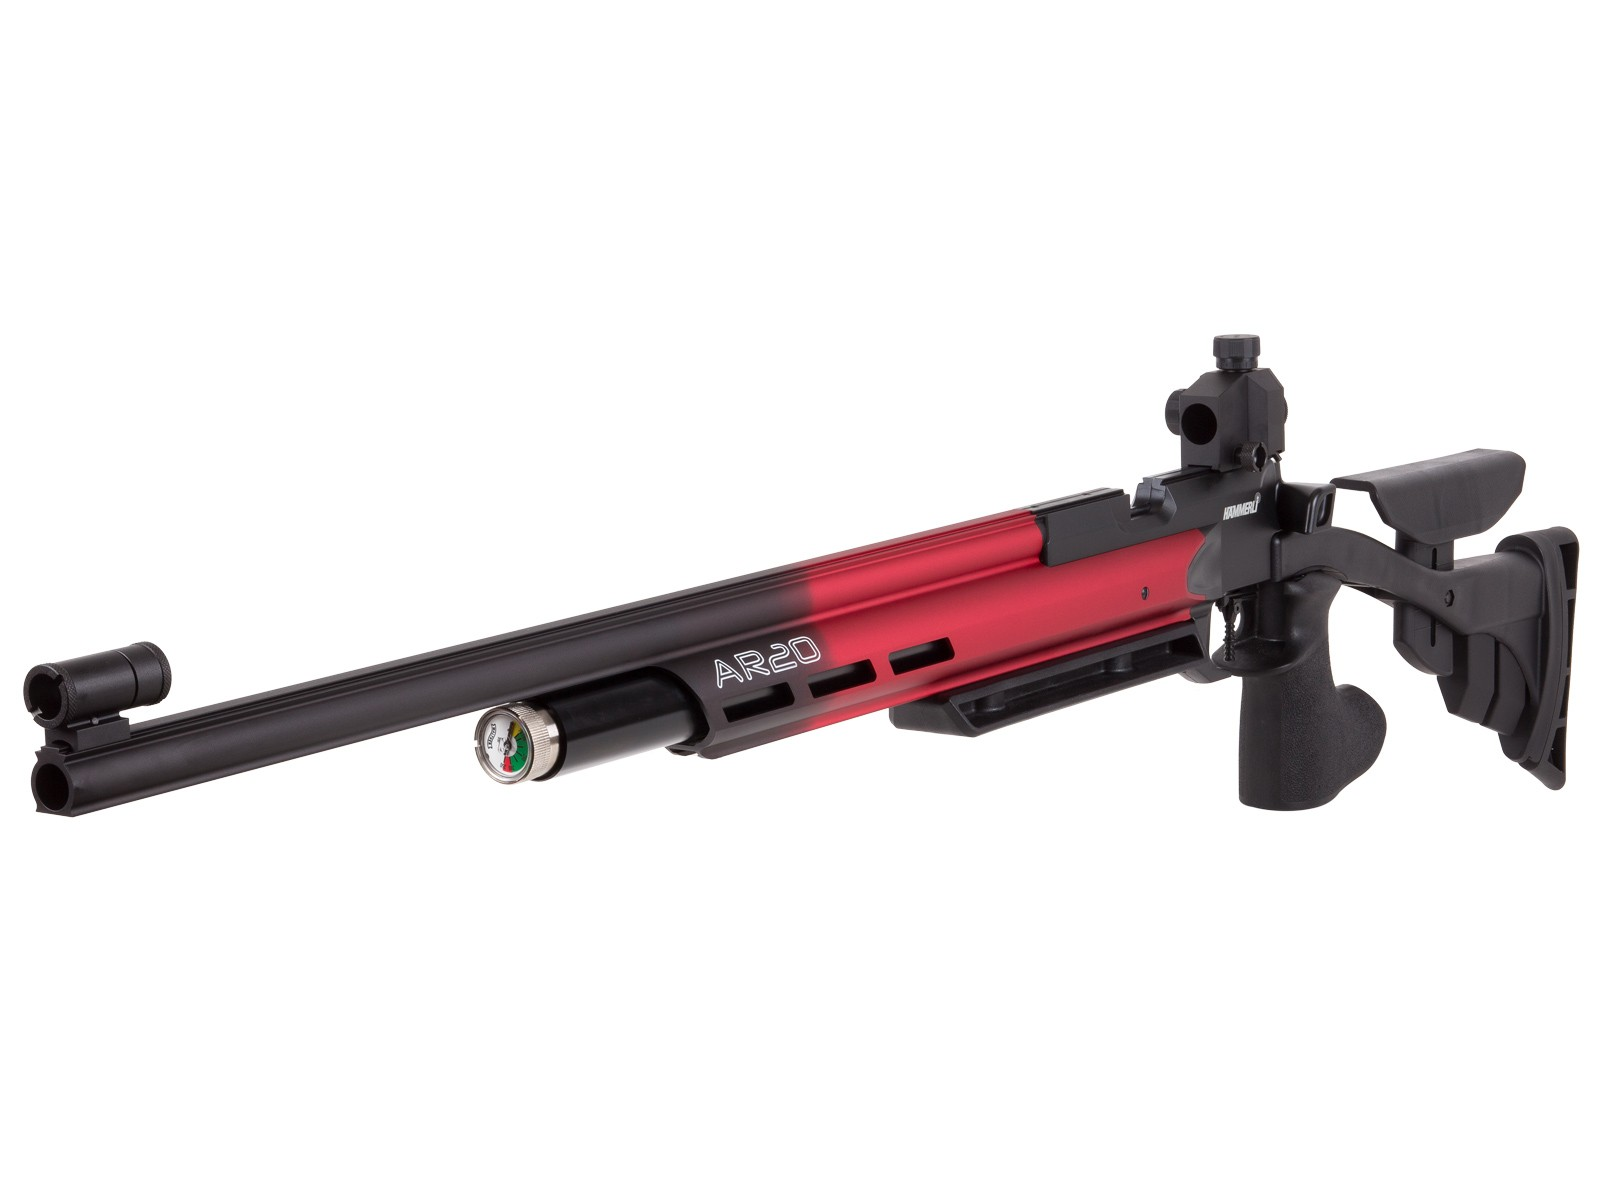 Hammerli AR20 Pro Air Rifle, Hot Red 0.177 Image